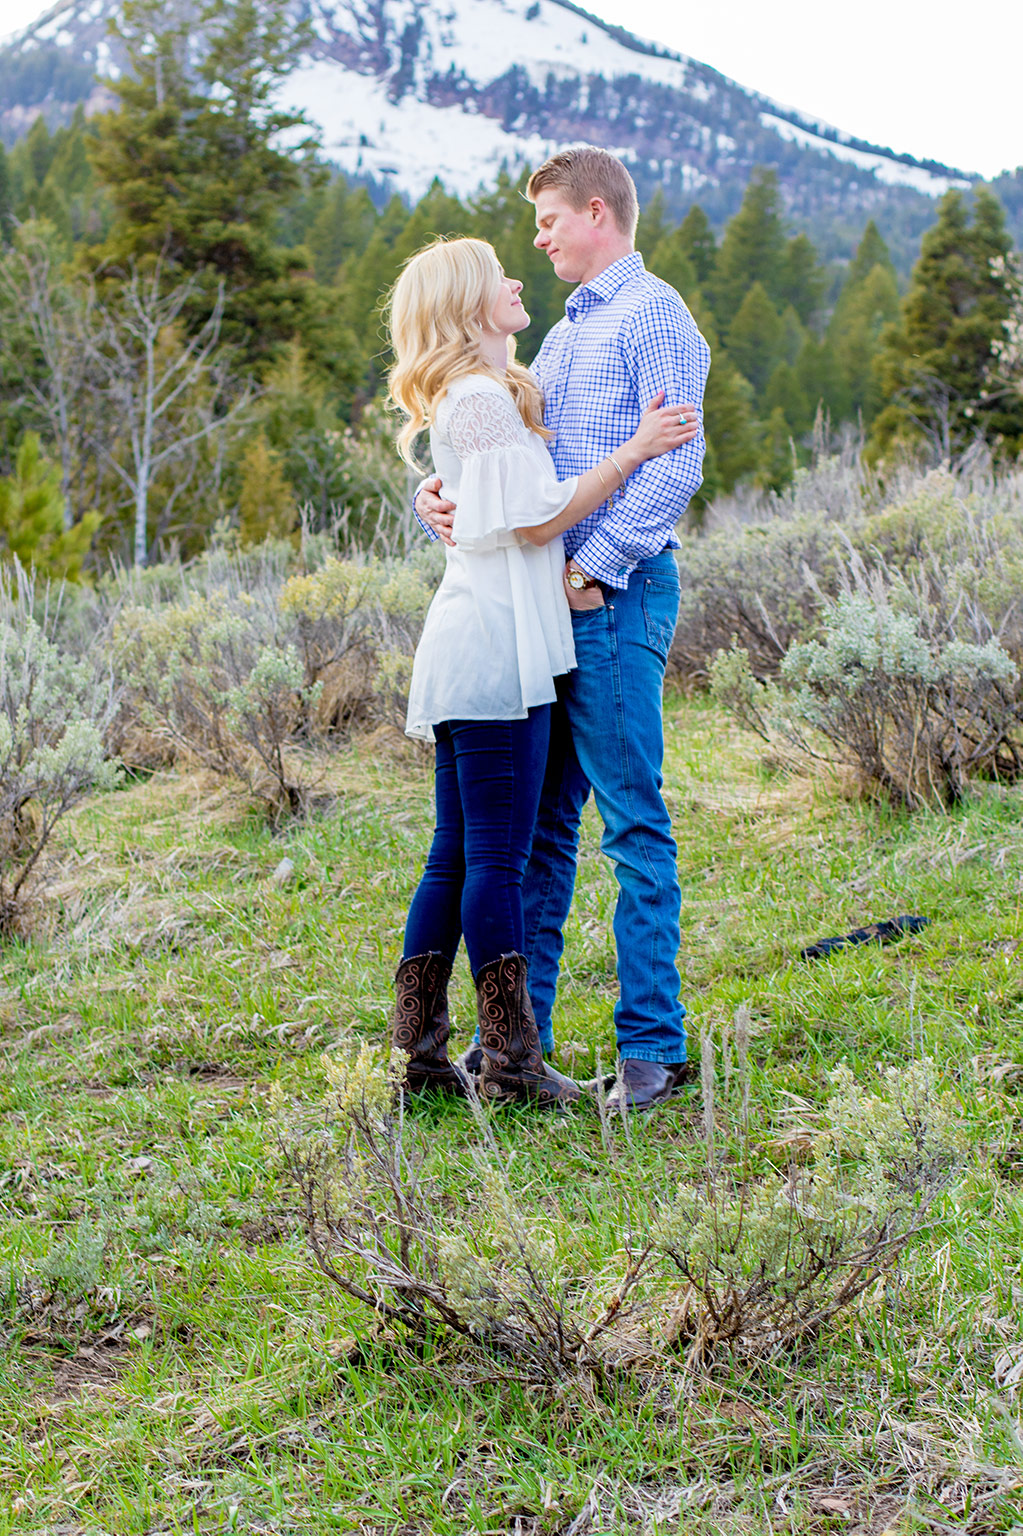 A pregnancy announcement photo shoot at Tibble Fork Reservoir, American Fork Canyon, UT | Arizona Photographer | Maren Elizabeth Photographer